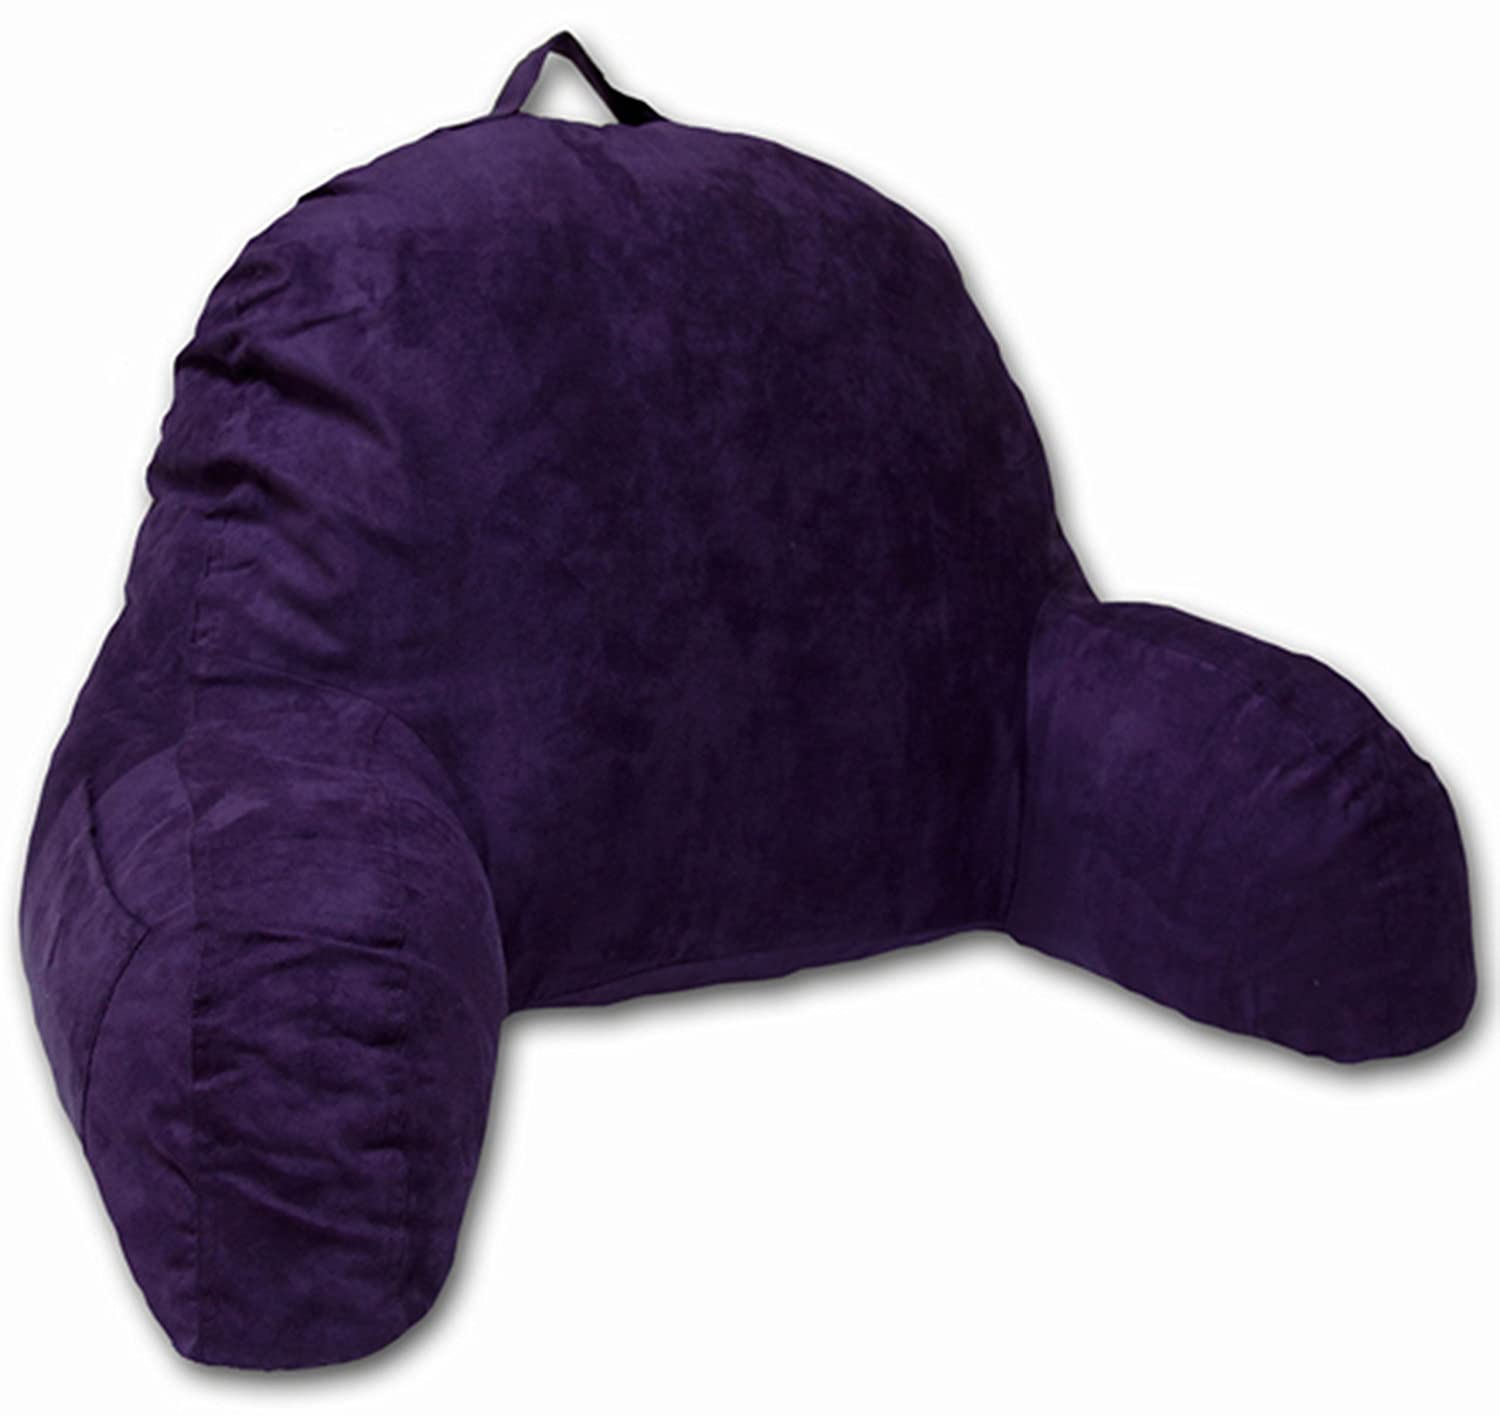 Bed chair pillow walmart - Microsuede Bedrest Pillow Purple Best Bed Rest Pillows With Arms For Reading In Bed